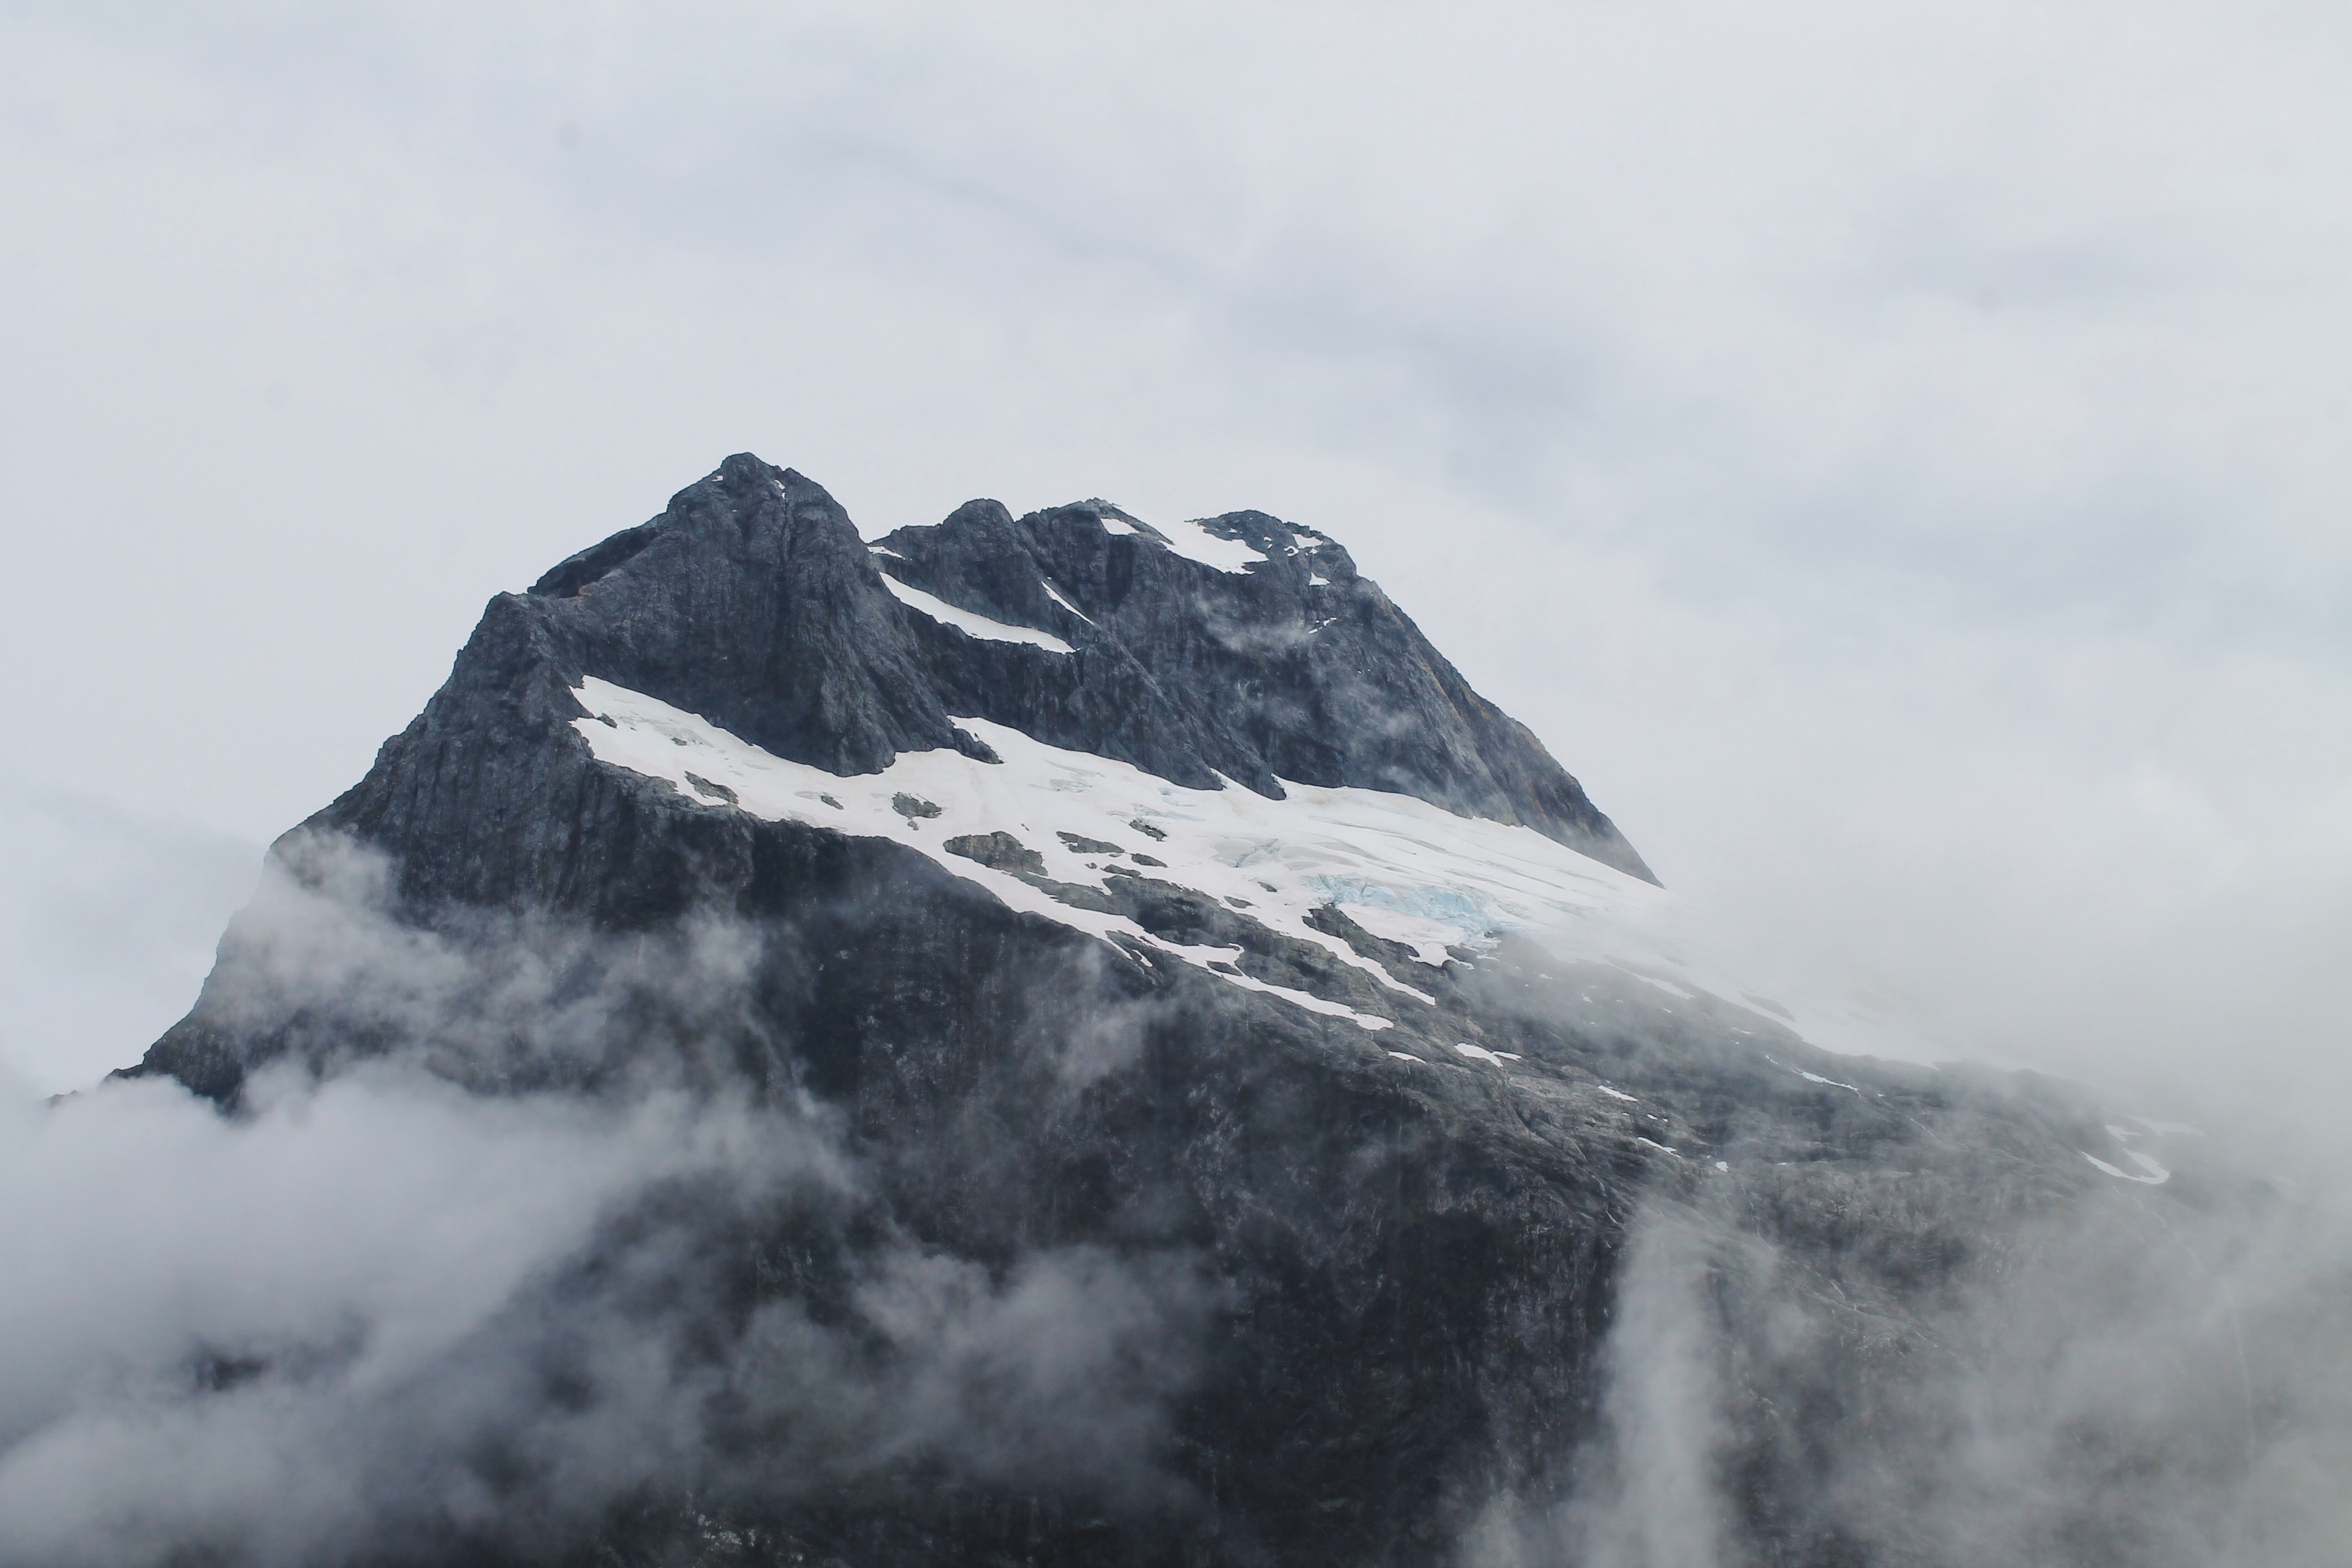 The peak of a mountain covered in snow and surrounded by fog